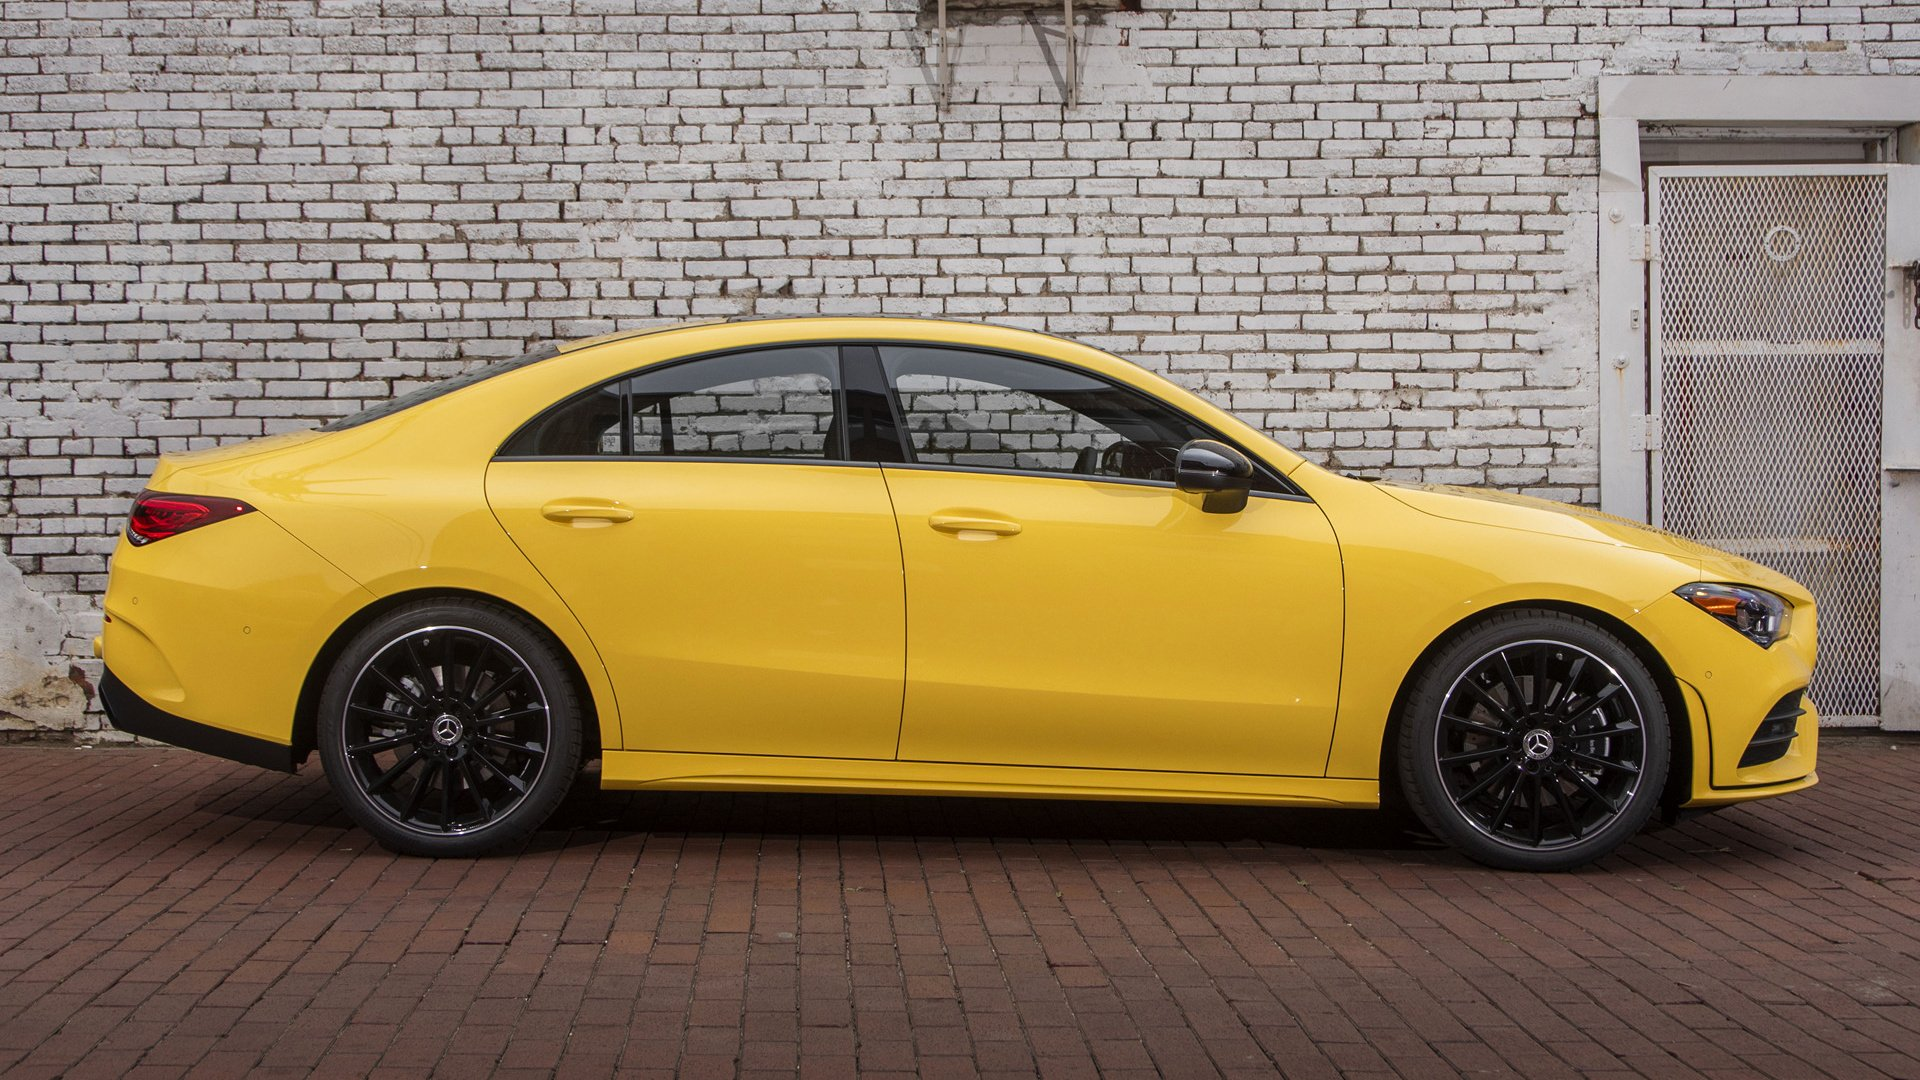 2020 Mercedes Benz CLA 250 HD Wallpaper Background Image 1920x1080